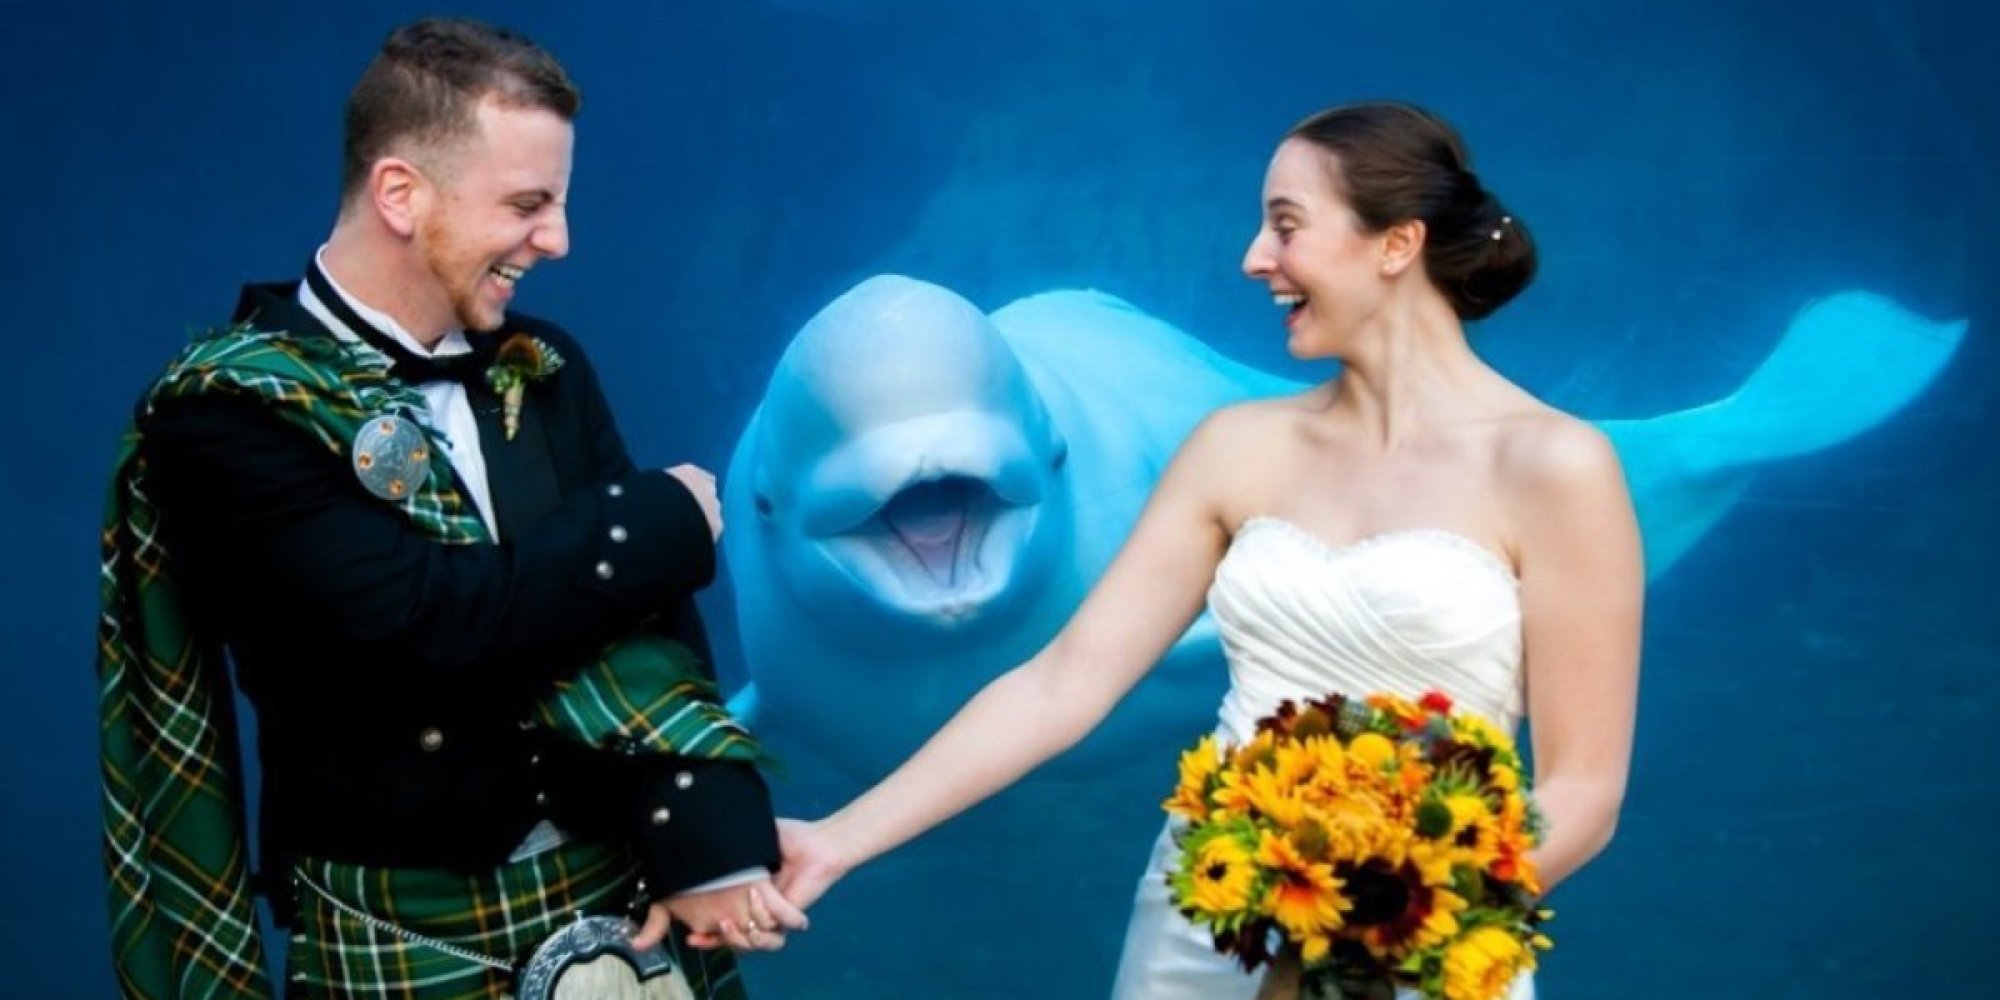 Best Time To Have A Wedding: The 45 All-Time Best Wedding Photobombs